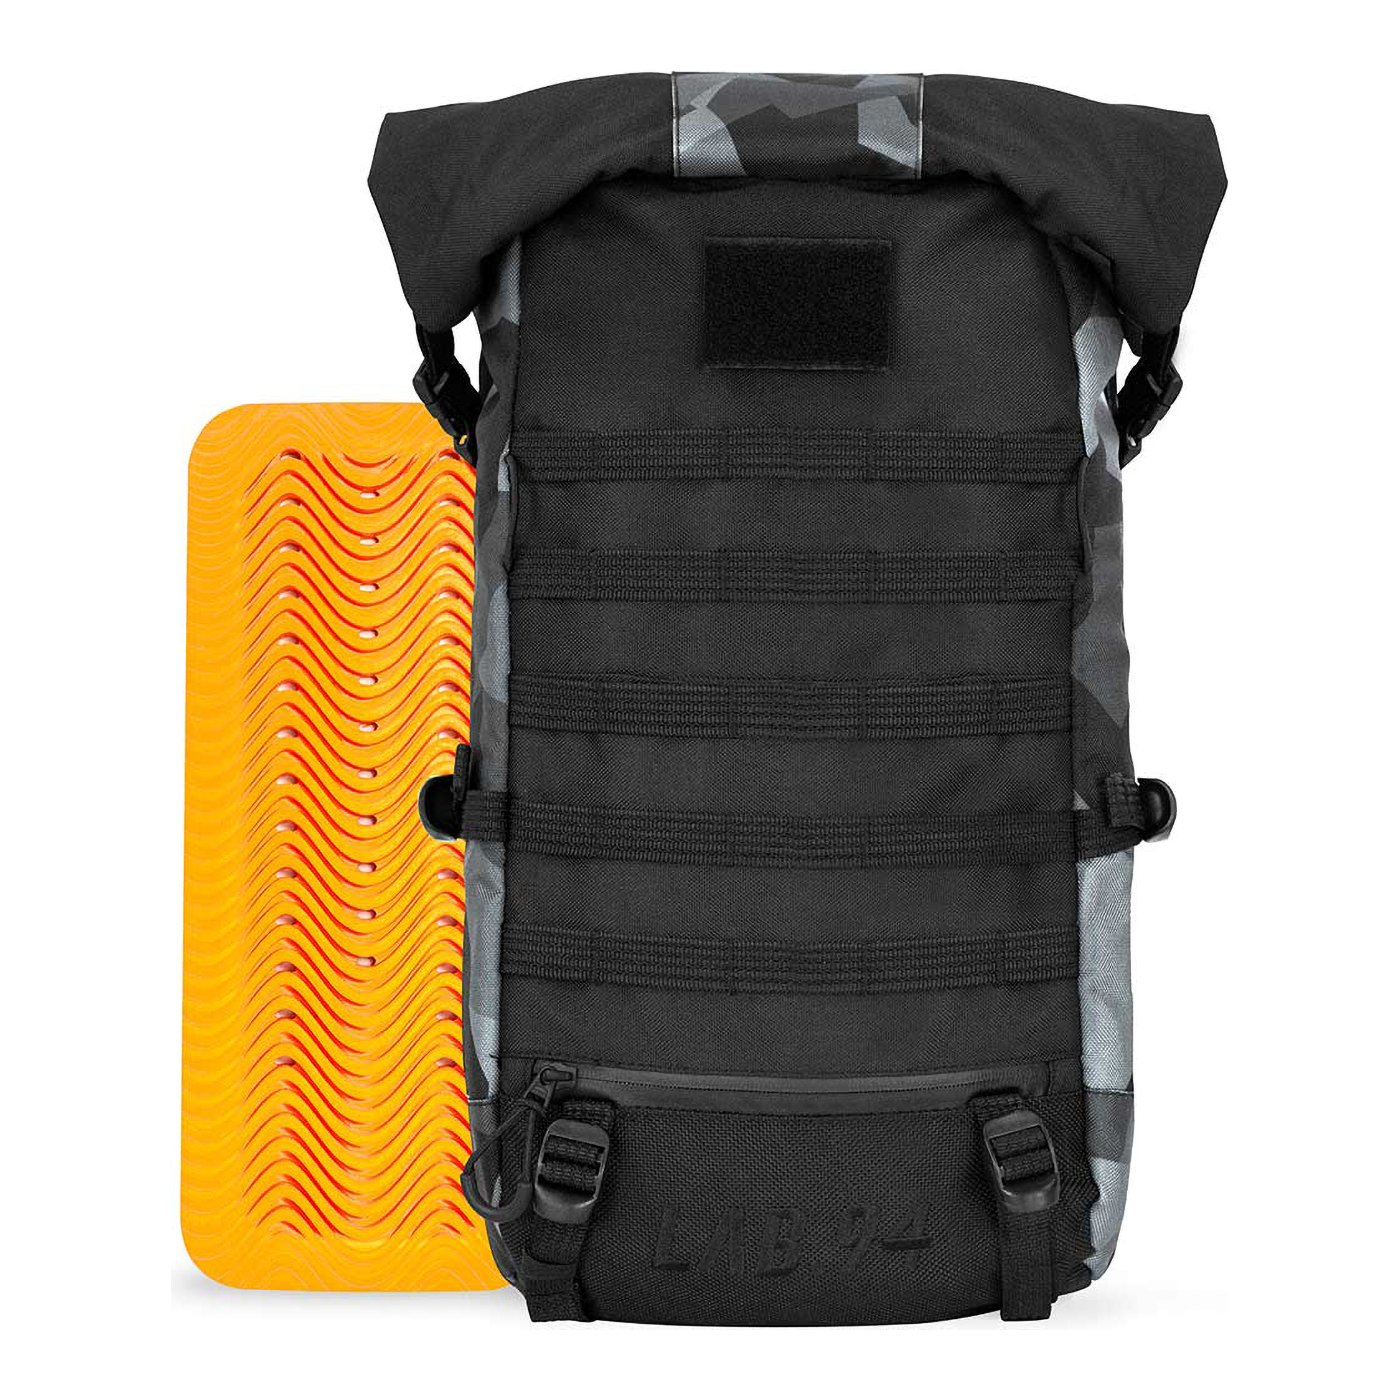 LAB.94 Ride Pack & Back Protector